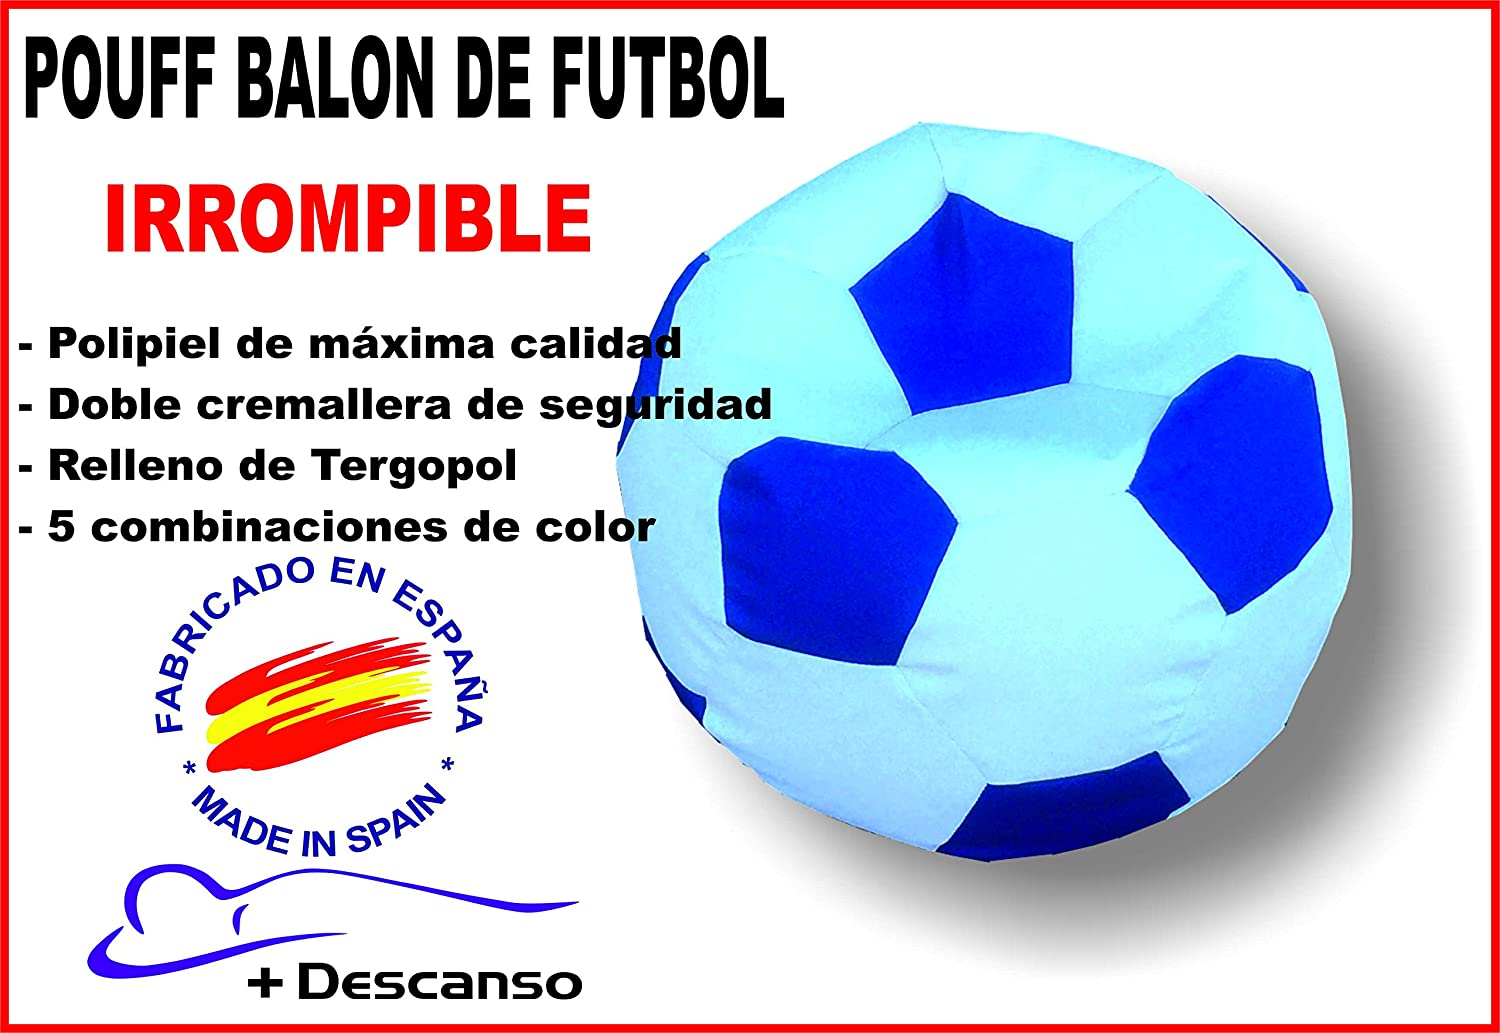 Pouff balon de futbol IRROMPIBLE de +descanso: Amazon.es: Hogar